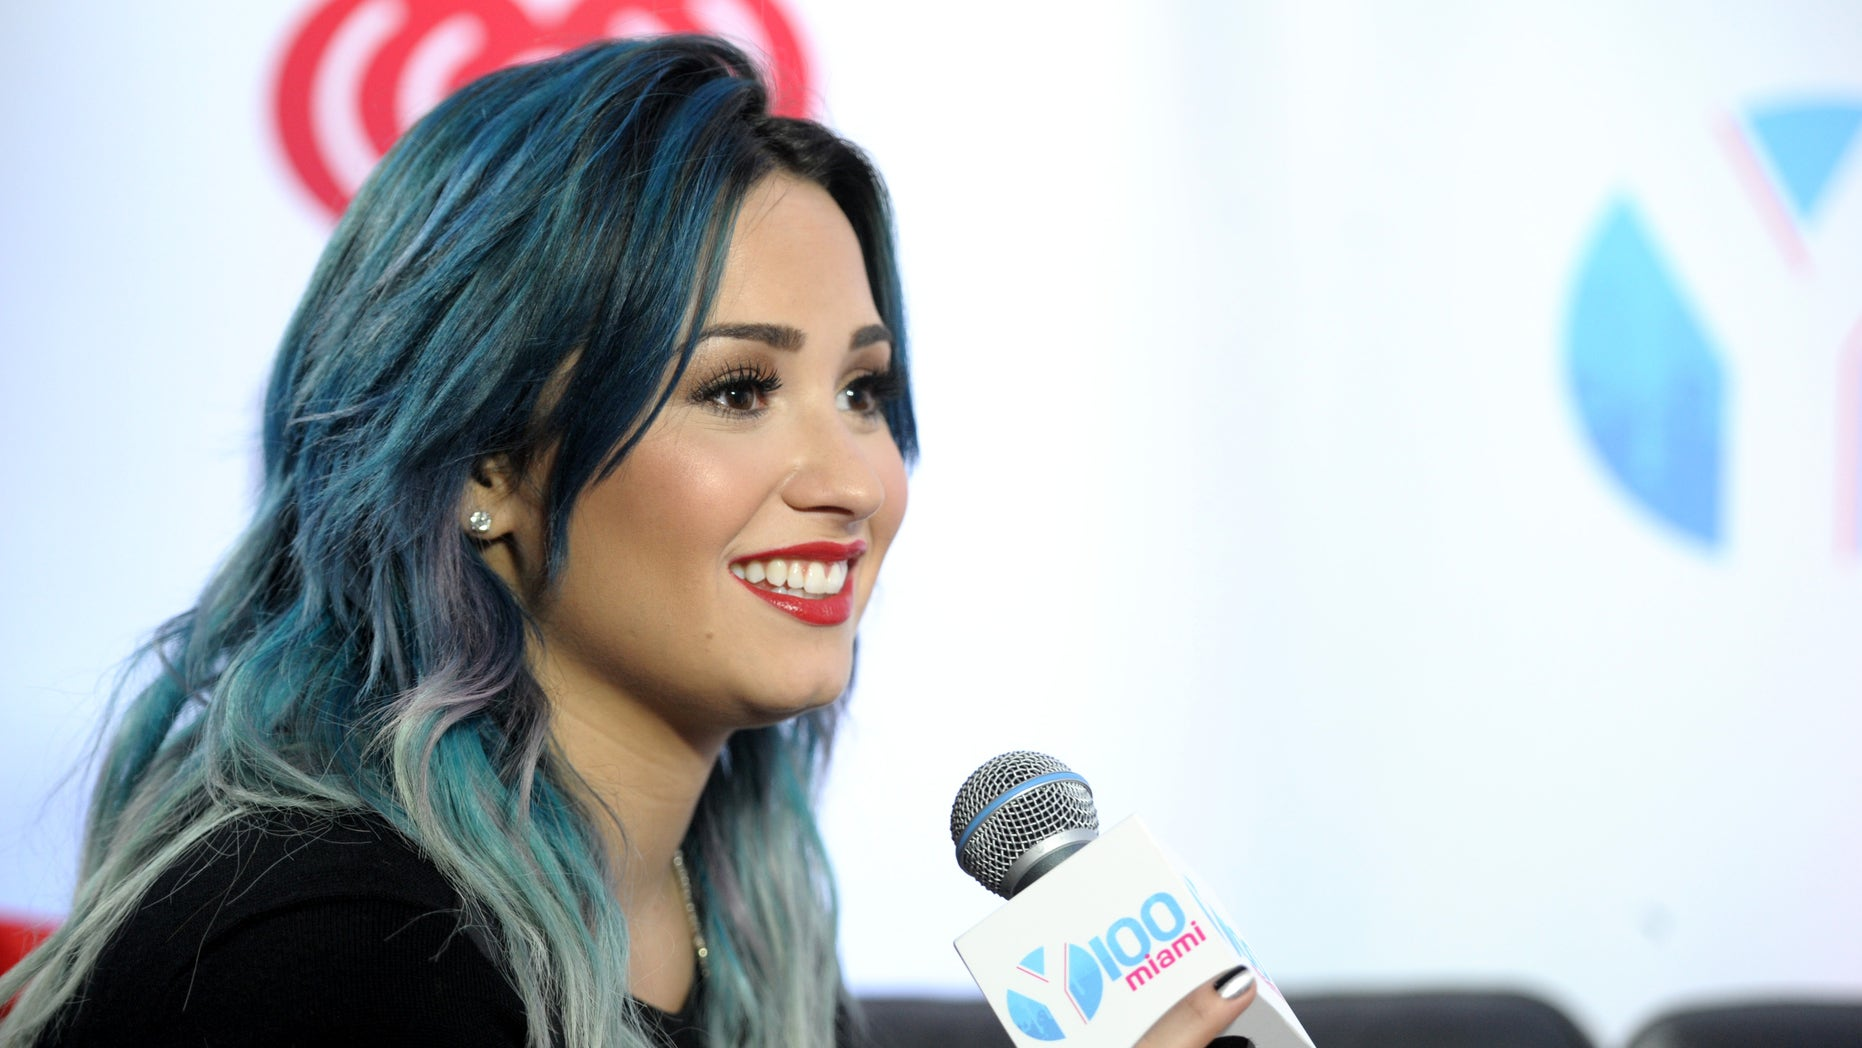 SUNRISE, FL - DECEMBER 20:  Demi Lovato attends Y100Âs Jingle Ball 2013 Presented by Jam Audio Collection at BB&T Center on December 20, 2013 in Miami, Florida.  (Photo by Gustavo Caballero/Getty Images for Clear Channel)